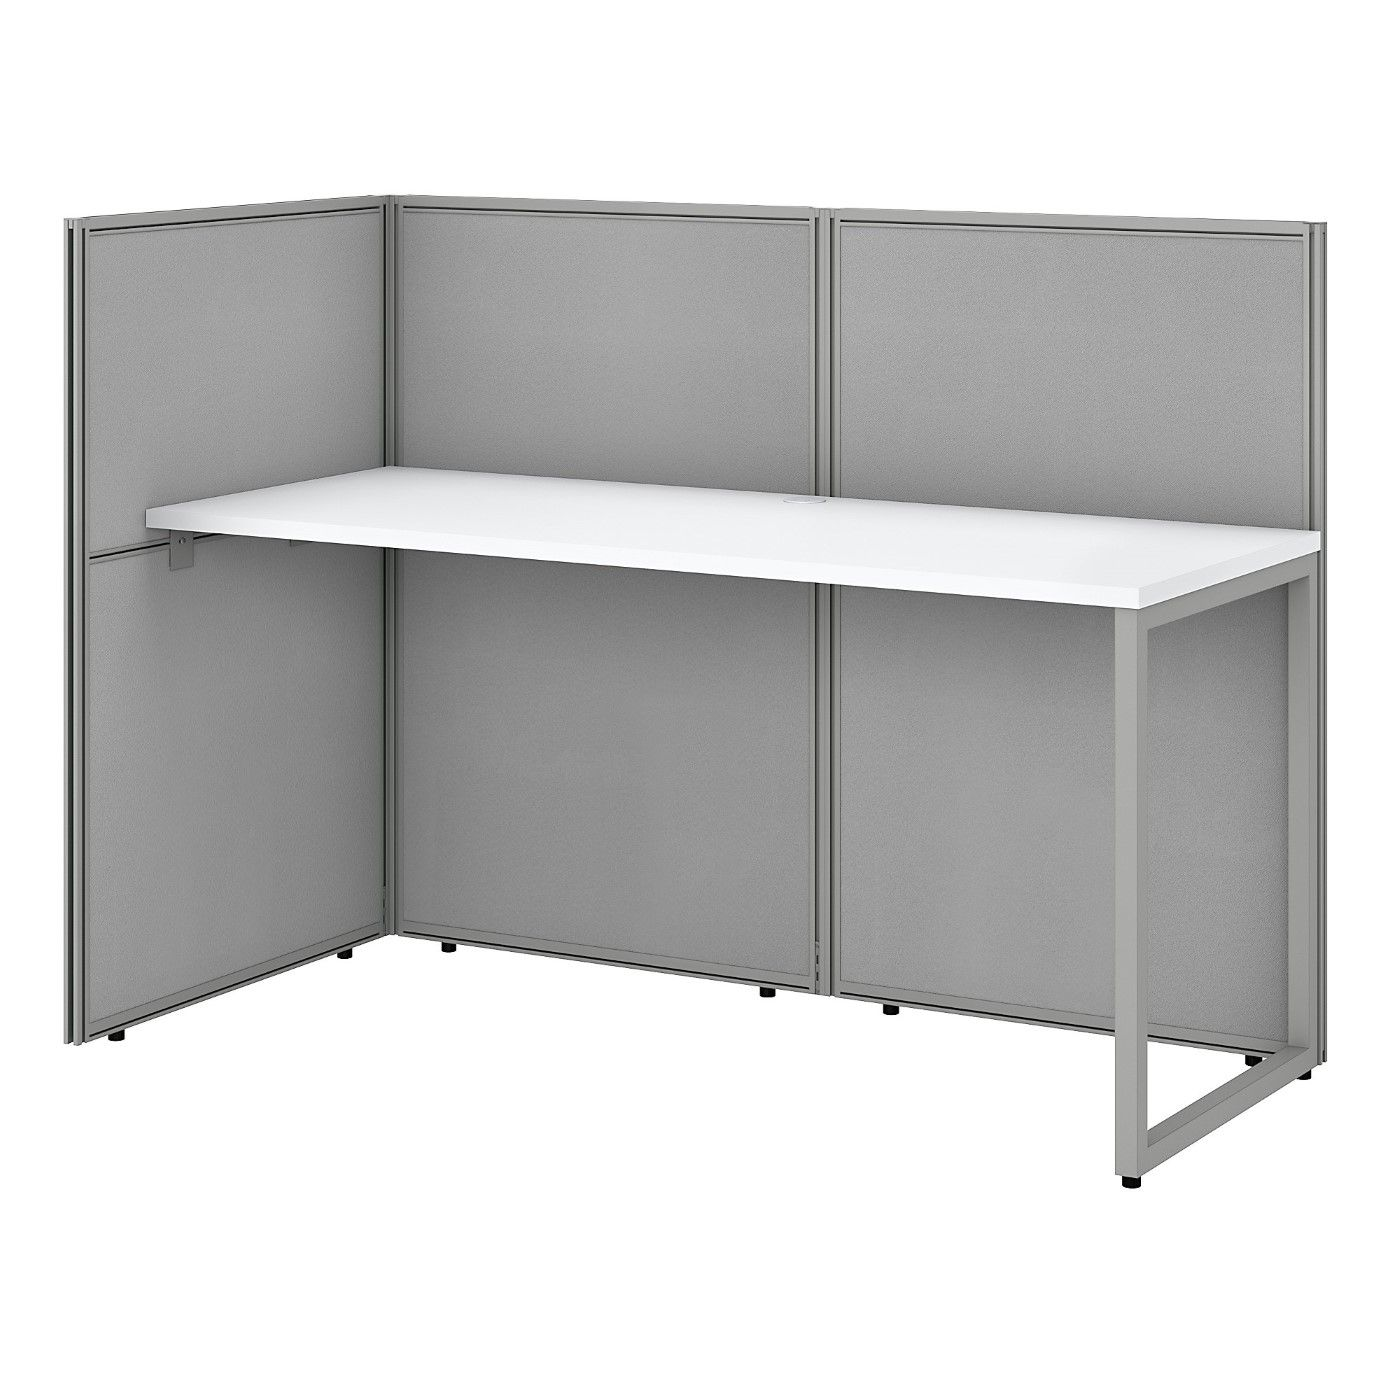 BUSH BUSINESS FURNITURE EASY OFFICE 60W CUBICLE DESK WORKSTATION WITH 45H OPEN PANELS. FREE SHIPPING